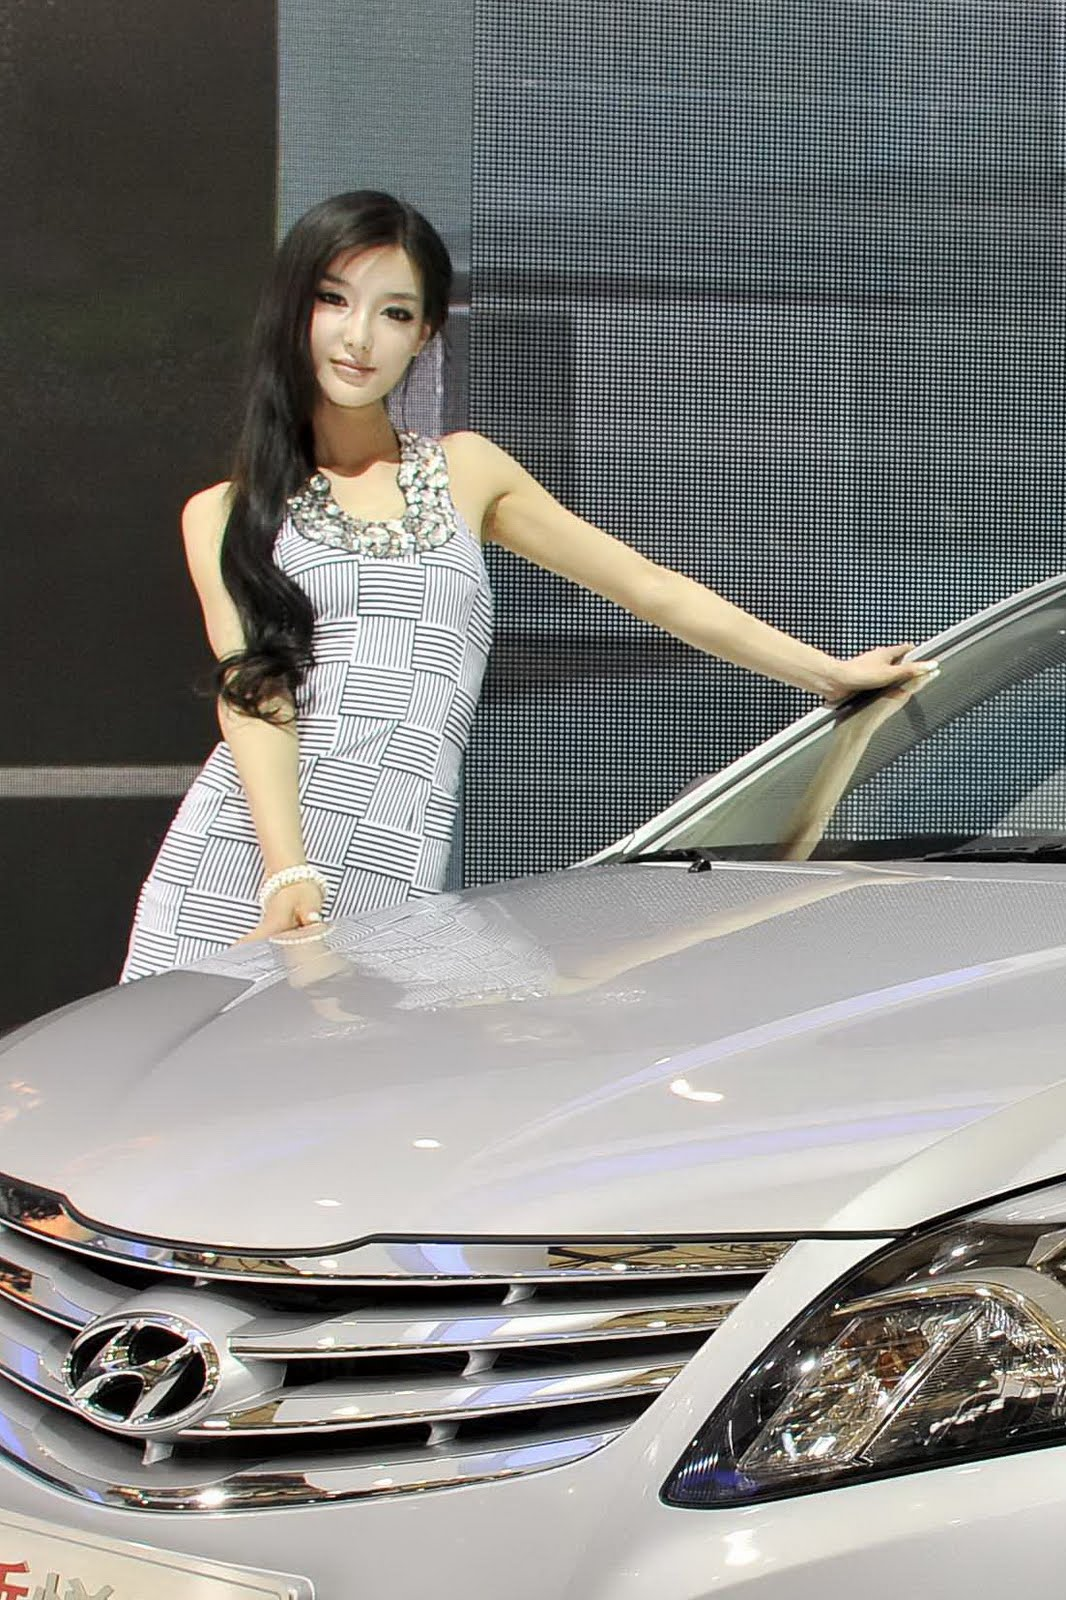 The Hot Girls Of The Shanghai Auto Show